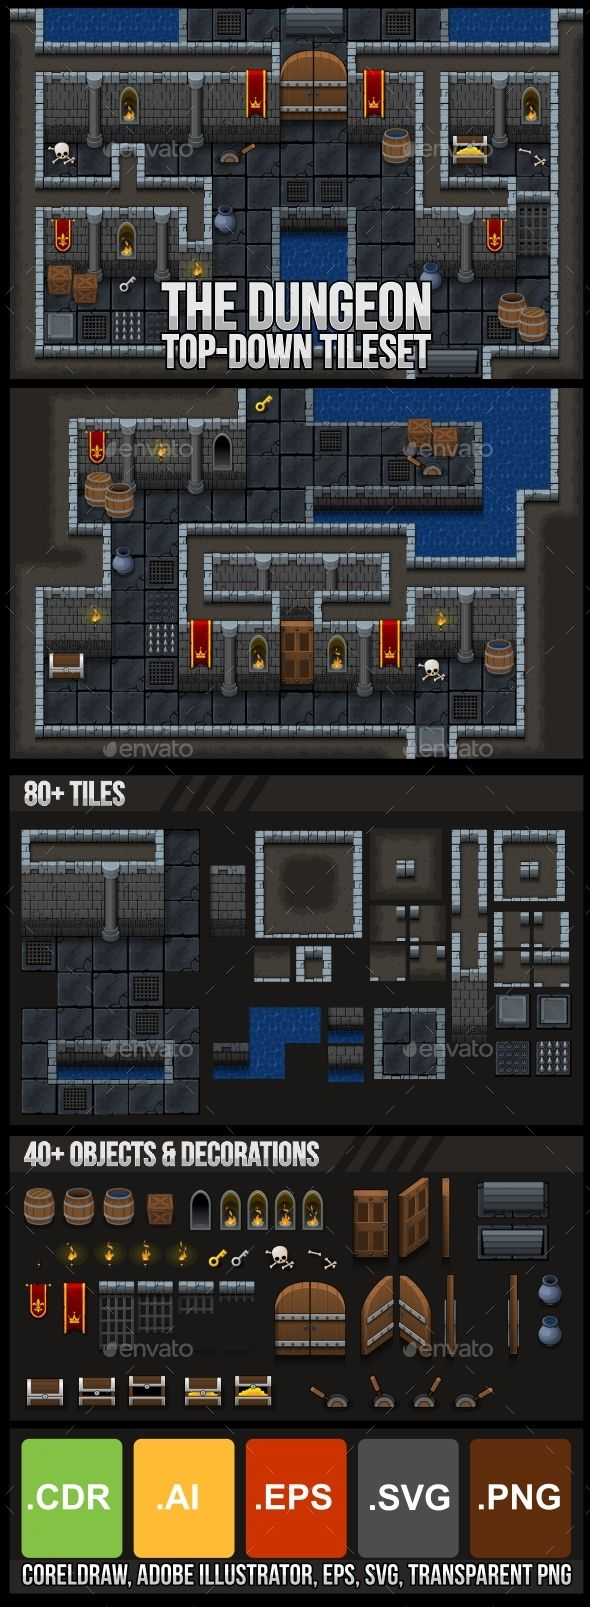 The Dungeon Top Down Tileset Tilesets Game Assets Top Down Game Pixel Art Games Pixel Art